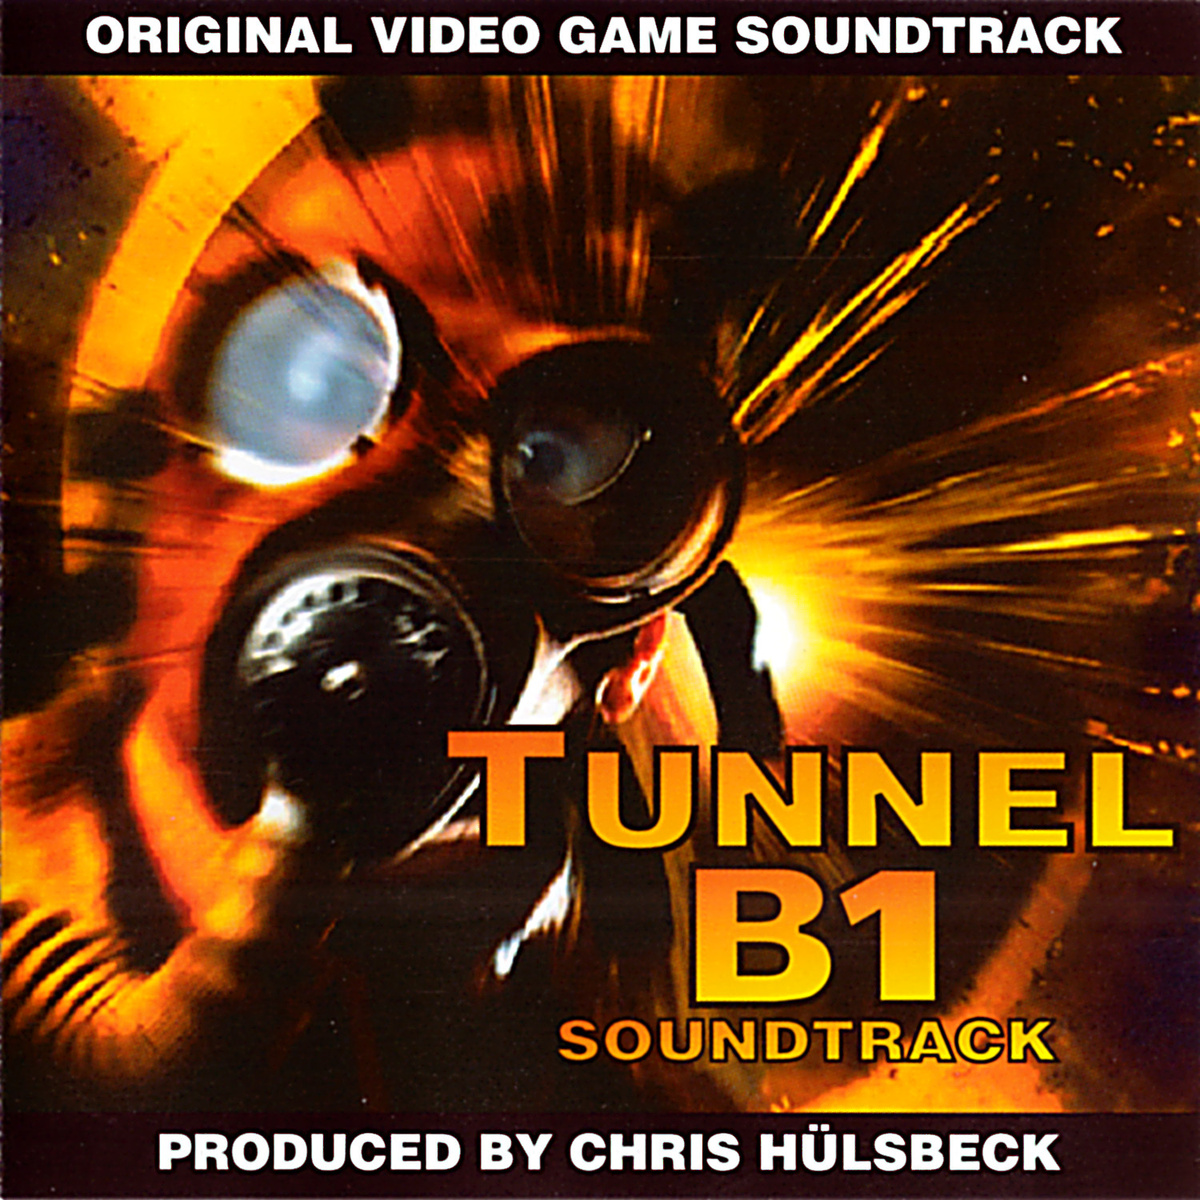 Tunnel_B1_Soundtrack__cover1200x1200.jpg